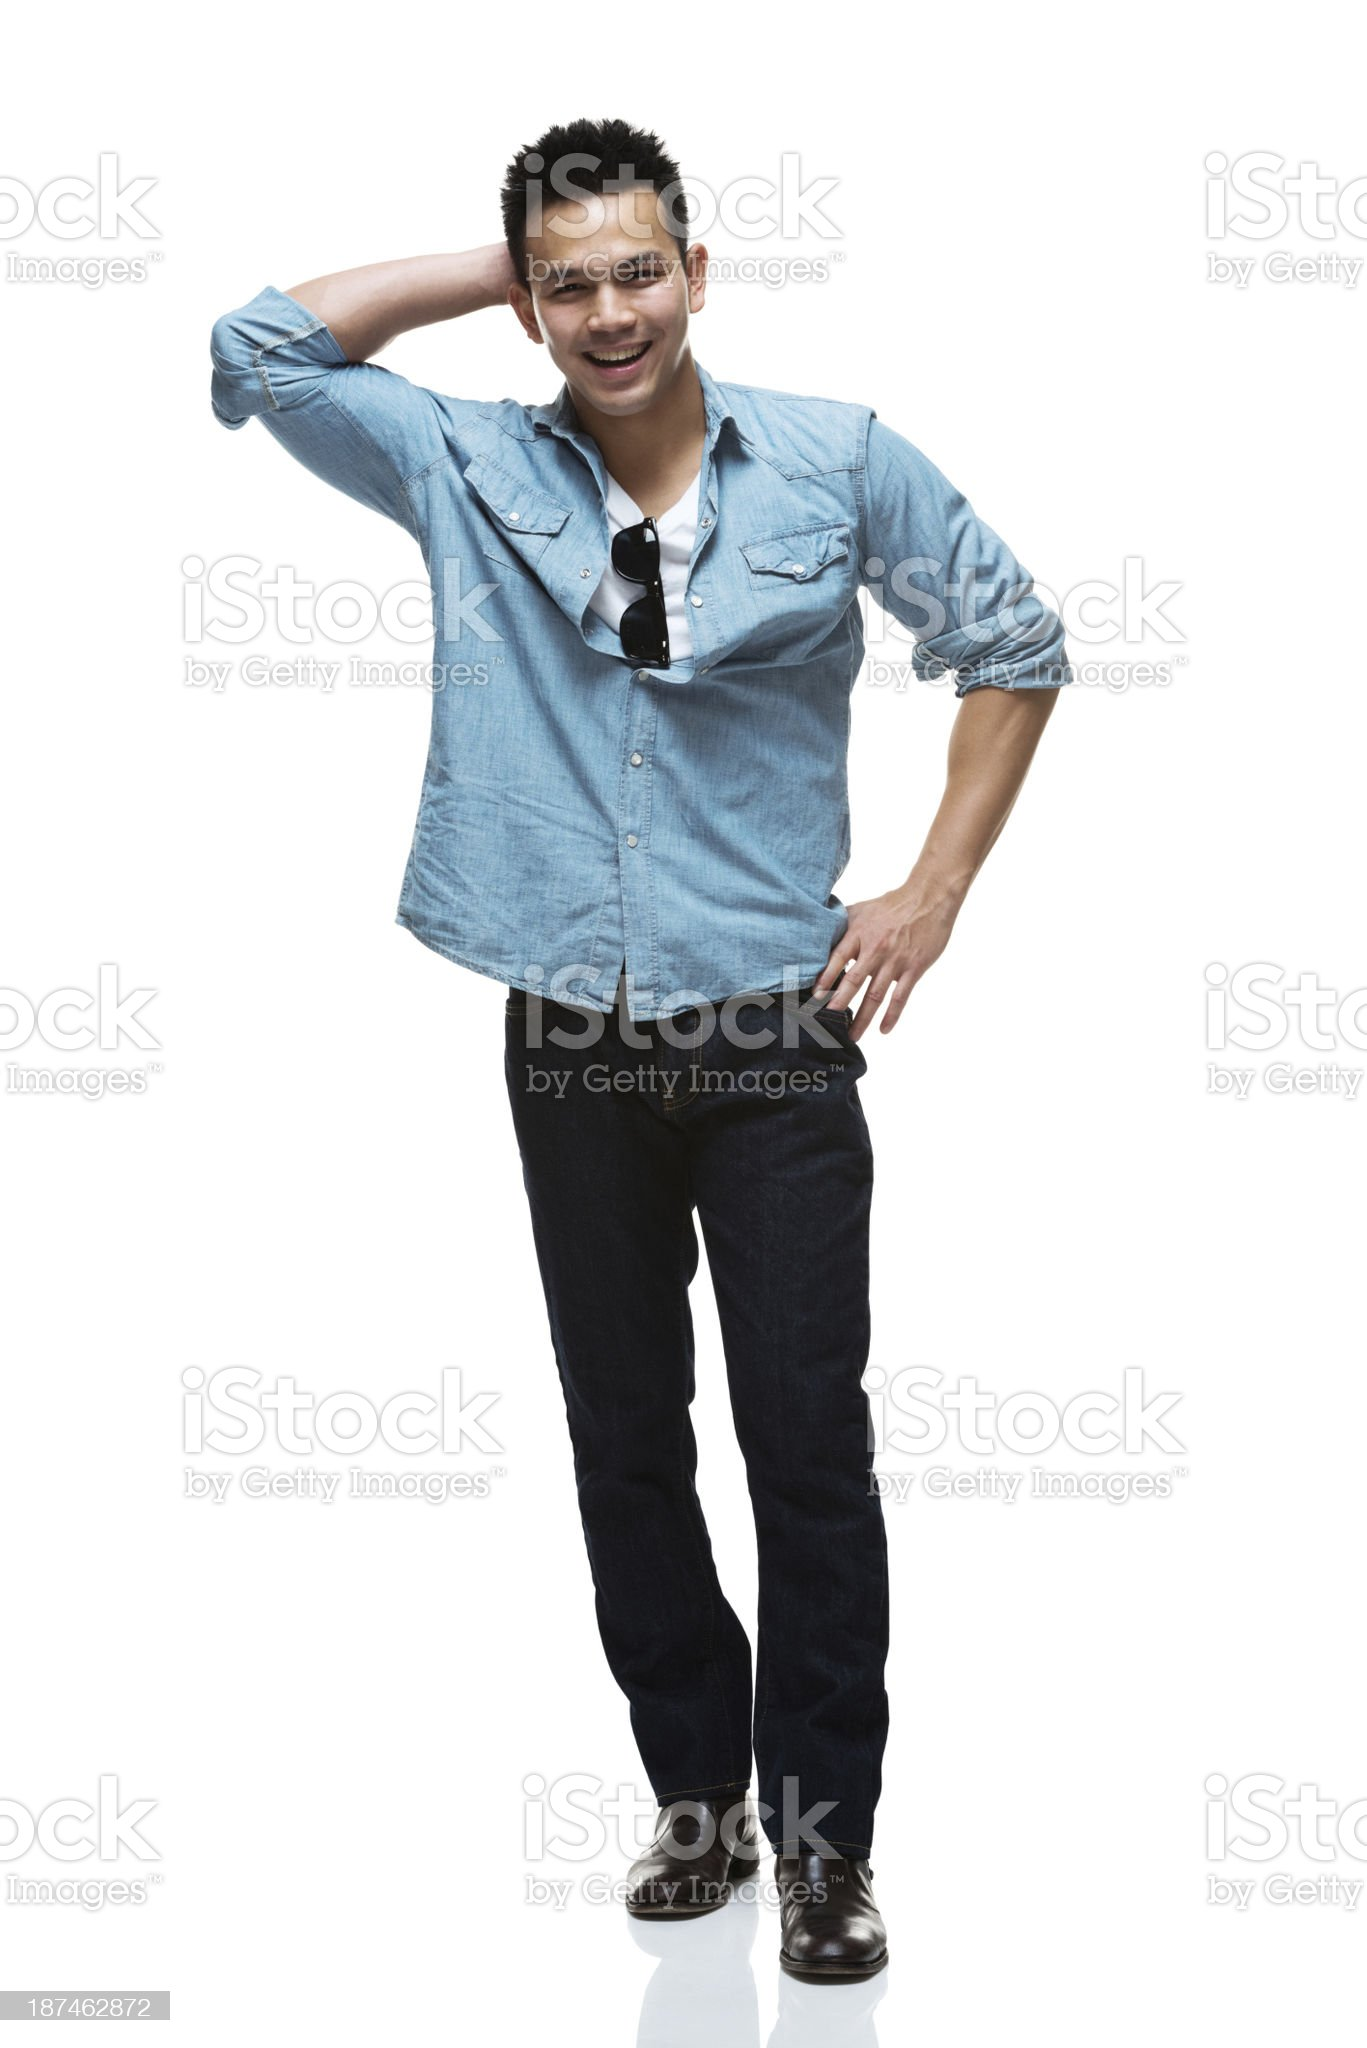 Happy young man standing with hand on hip royalty-free stock photo